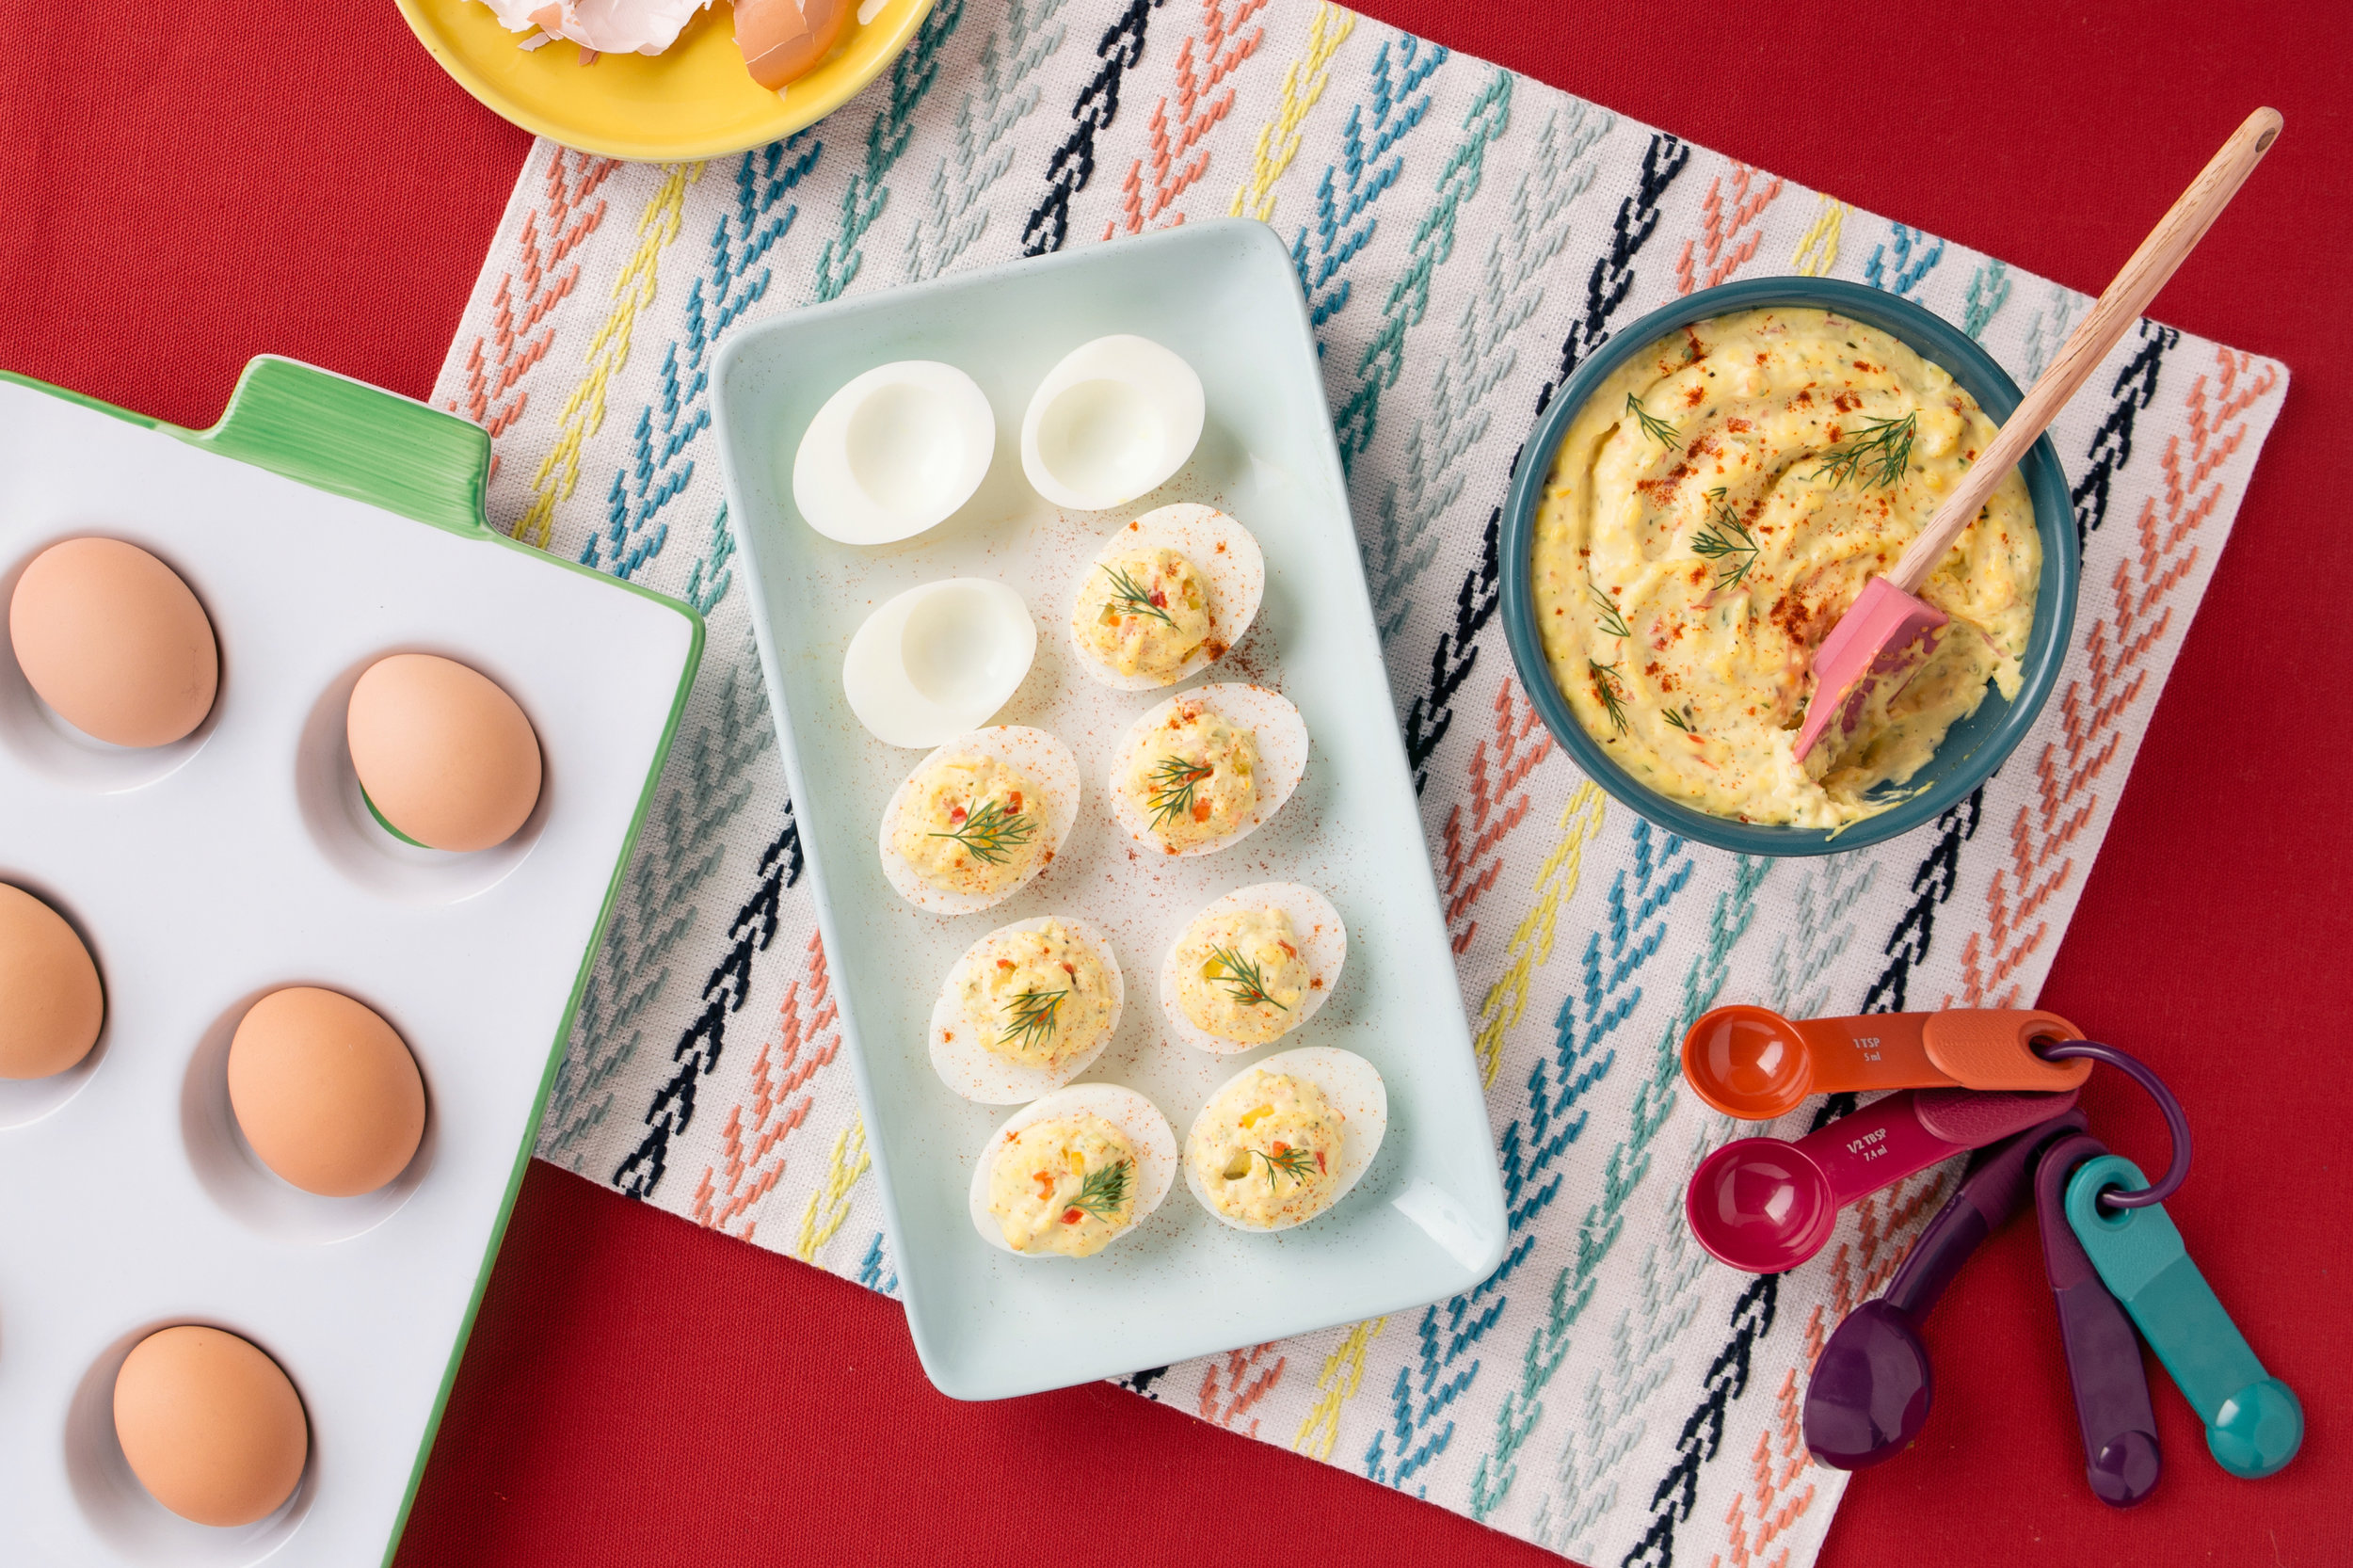 Teachable_Tastes_DeviledEggs.jpg